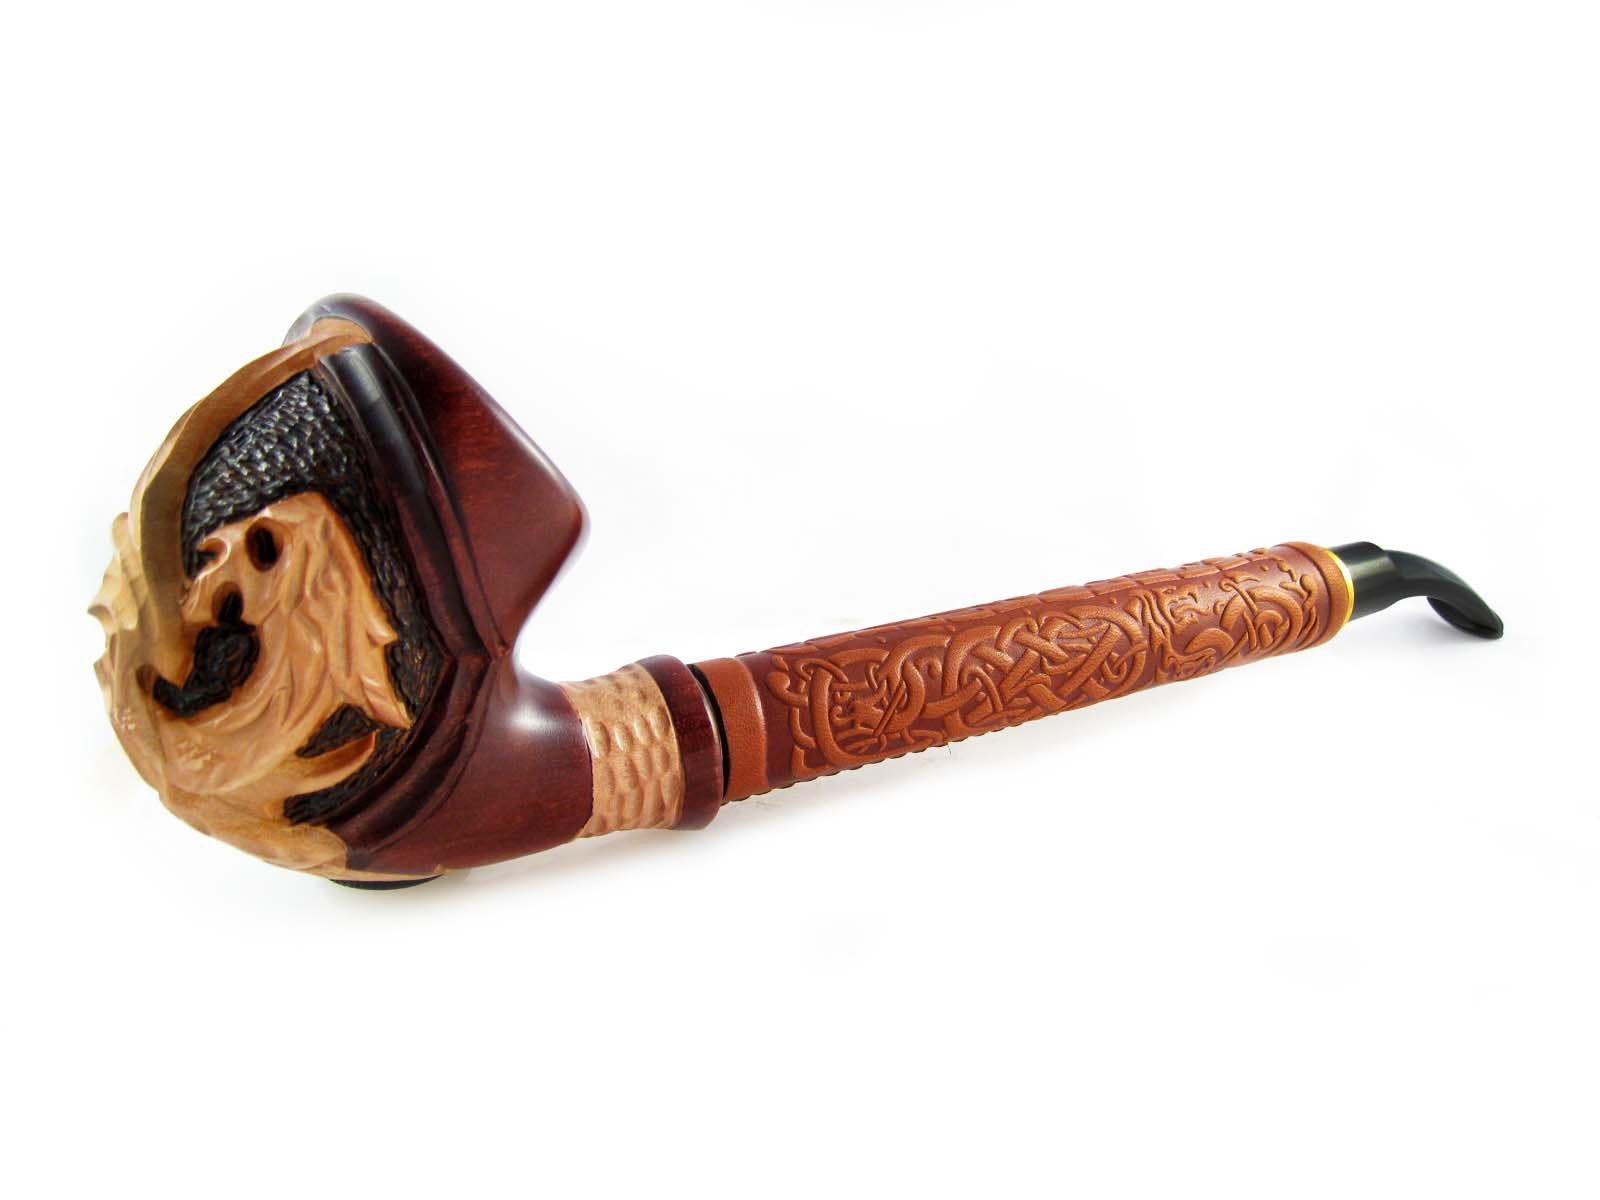 Exclusive Fashion Pipes - Long Churchwarden ''DRAGON'' Tobacco Smoking Pipe (2, 2) by Fashion Pipes (Image #2)